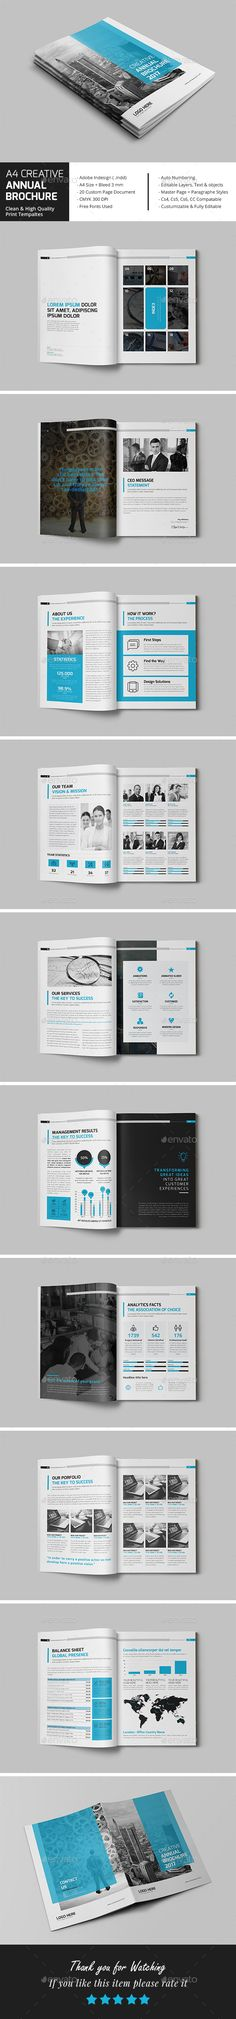 A4 Creative Annual Brochure Template InDesign INDD